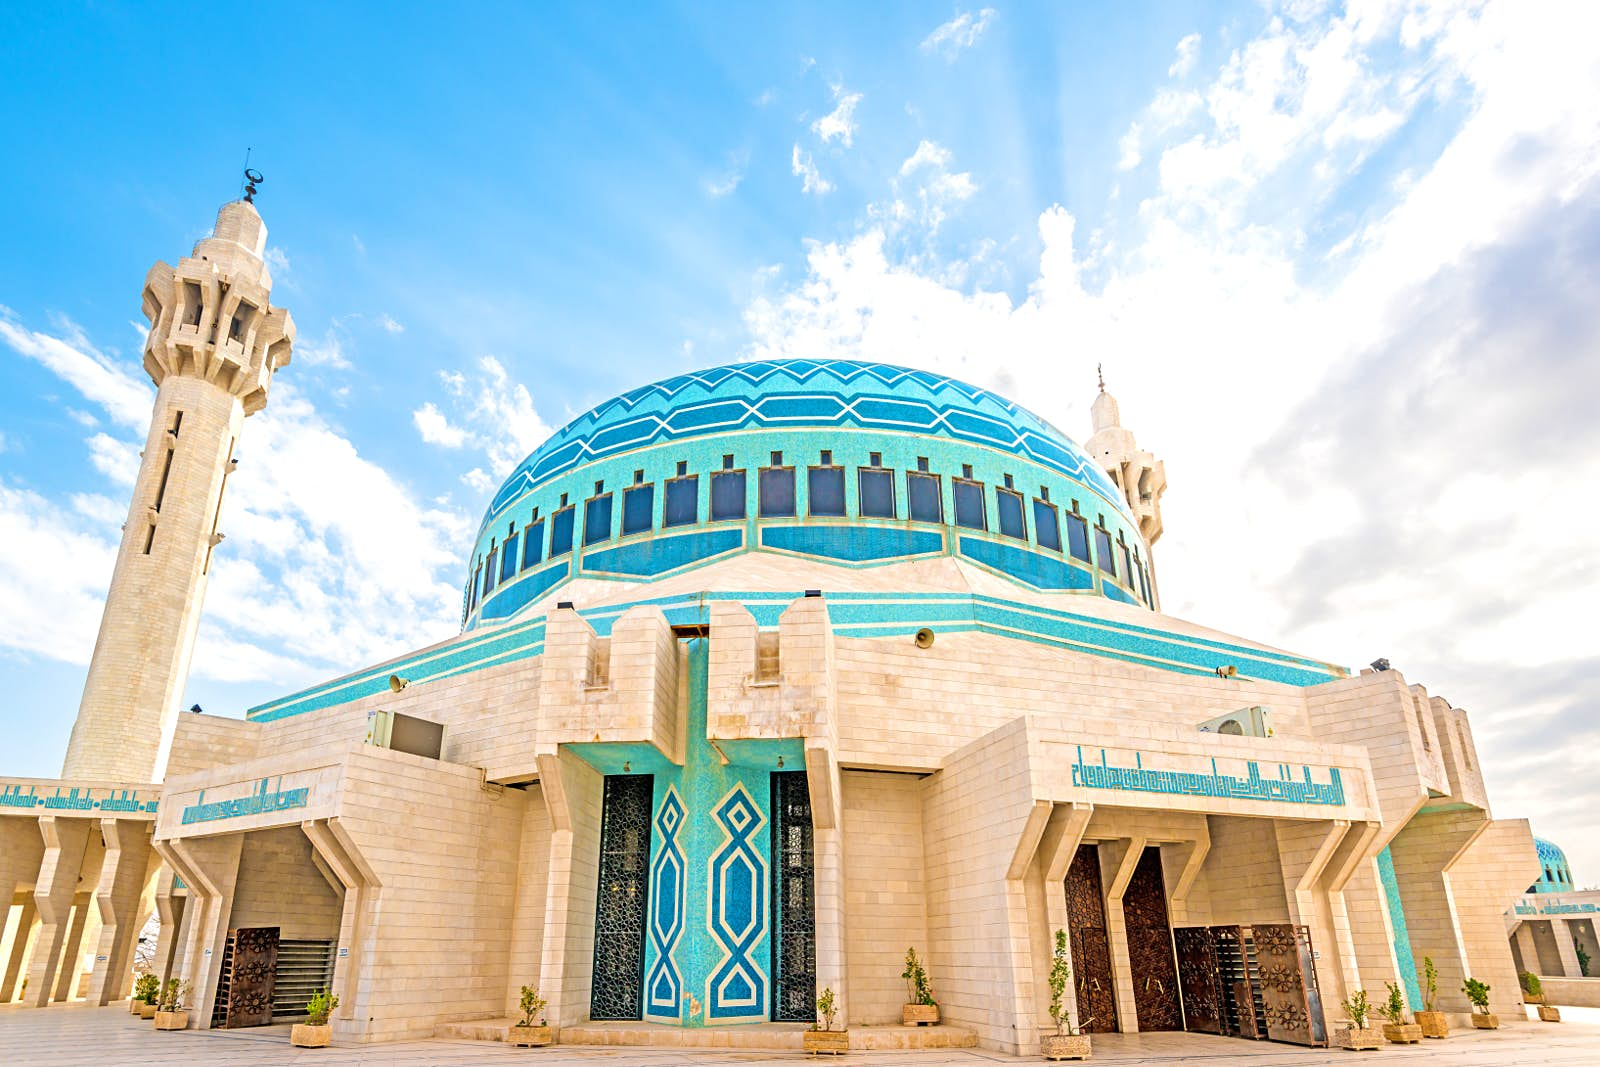 Shot with a wide-angle lens, this image looks from the ground up at the large blue dome and towering minarets; the lower part of the mosque is tan coloured with blue mosaic tiles; Free things to do in Amman, Jordan